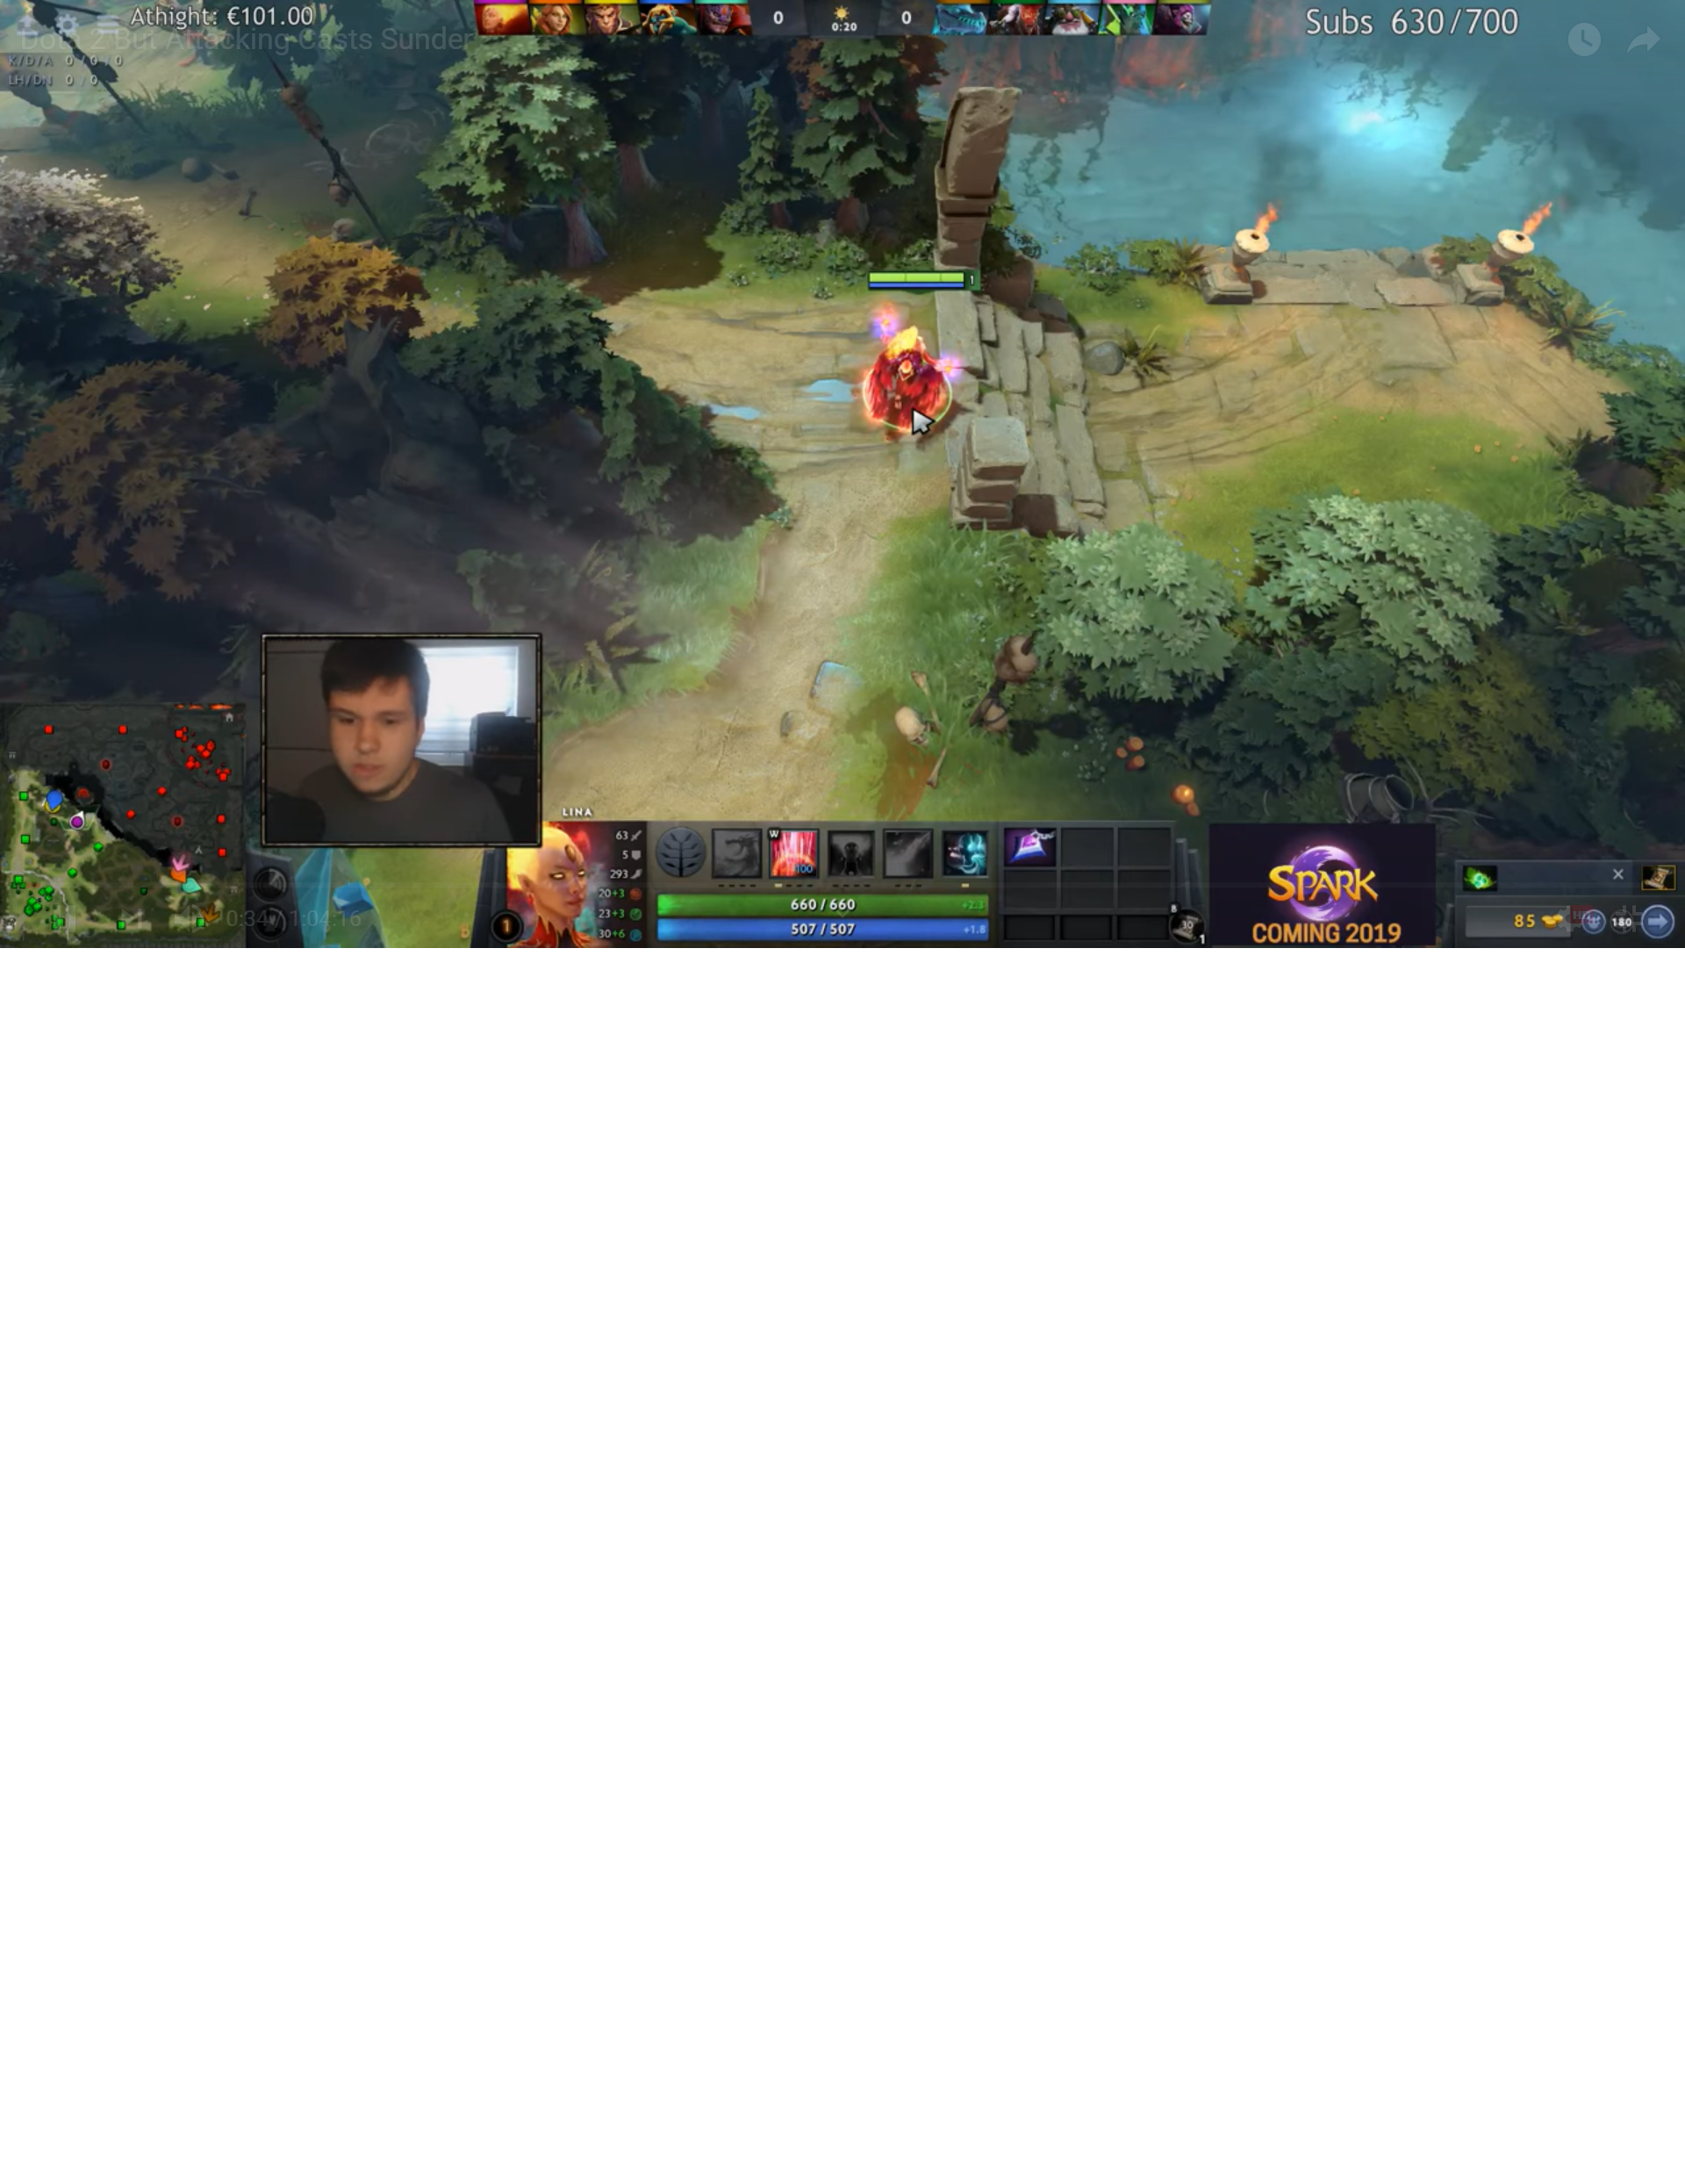 Youtube overlay never full disappears it only ever fades slightly